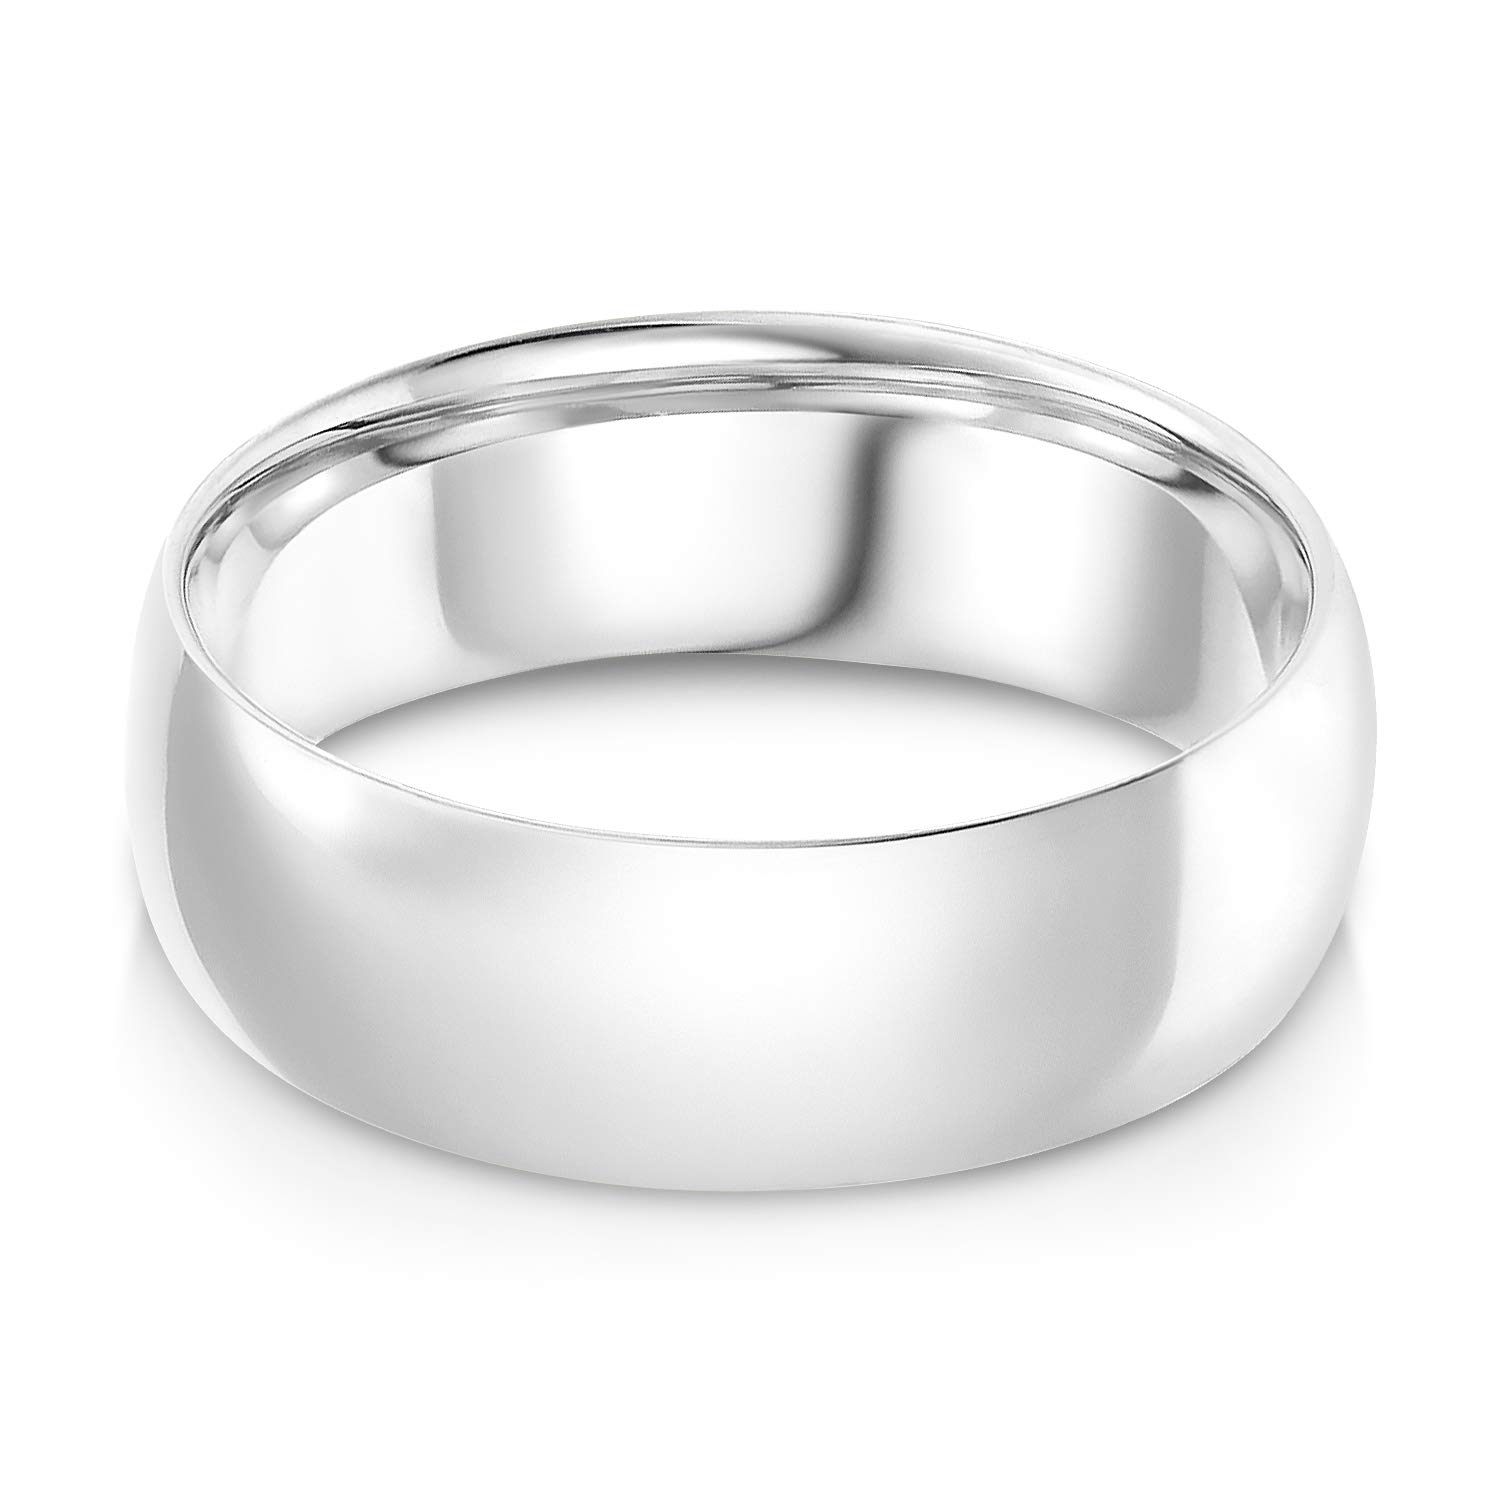 Ioka - 14k Solid White Gold 7mm Plain Comfort Fit Wedding Band - size 10.5